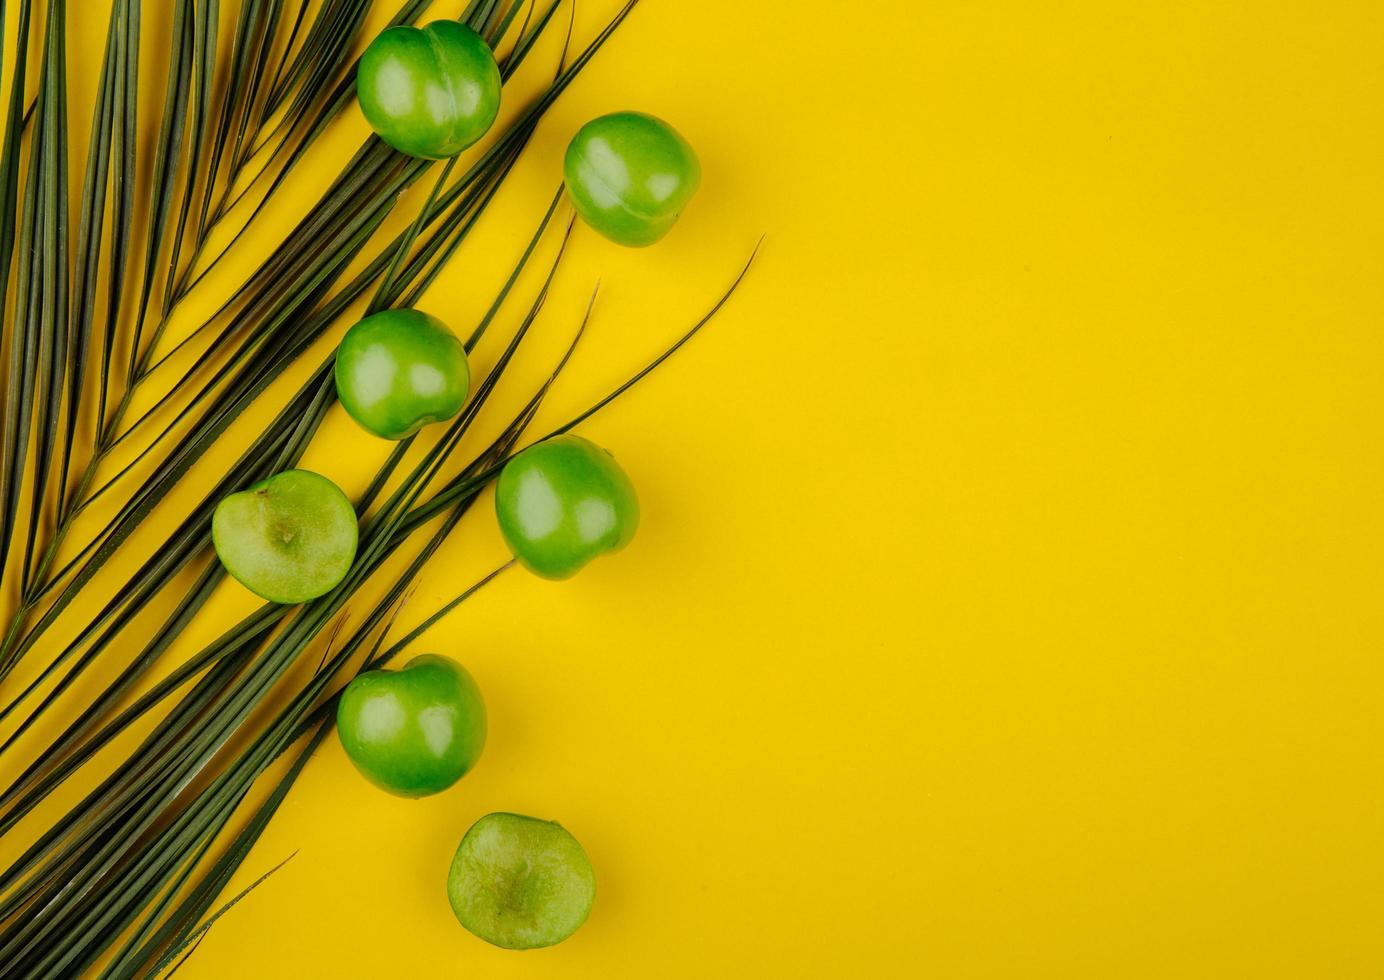 Top view of sour green plums with a palm leaf on a yellow background photo